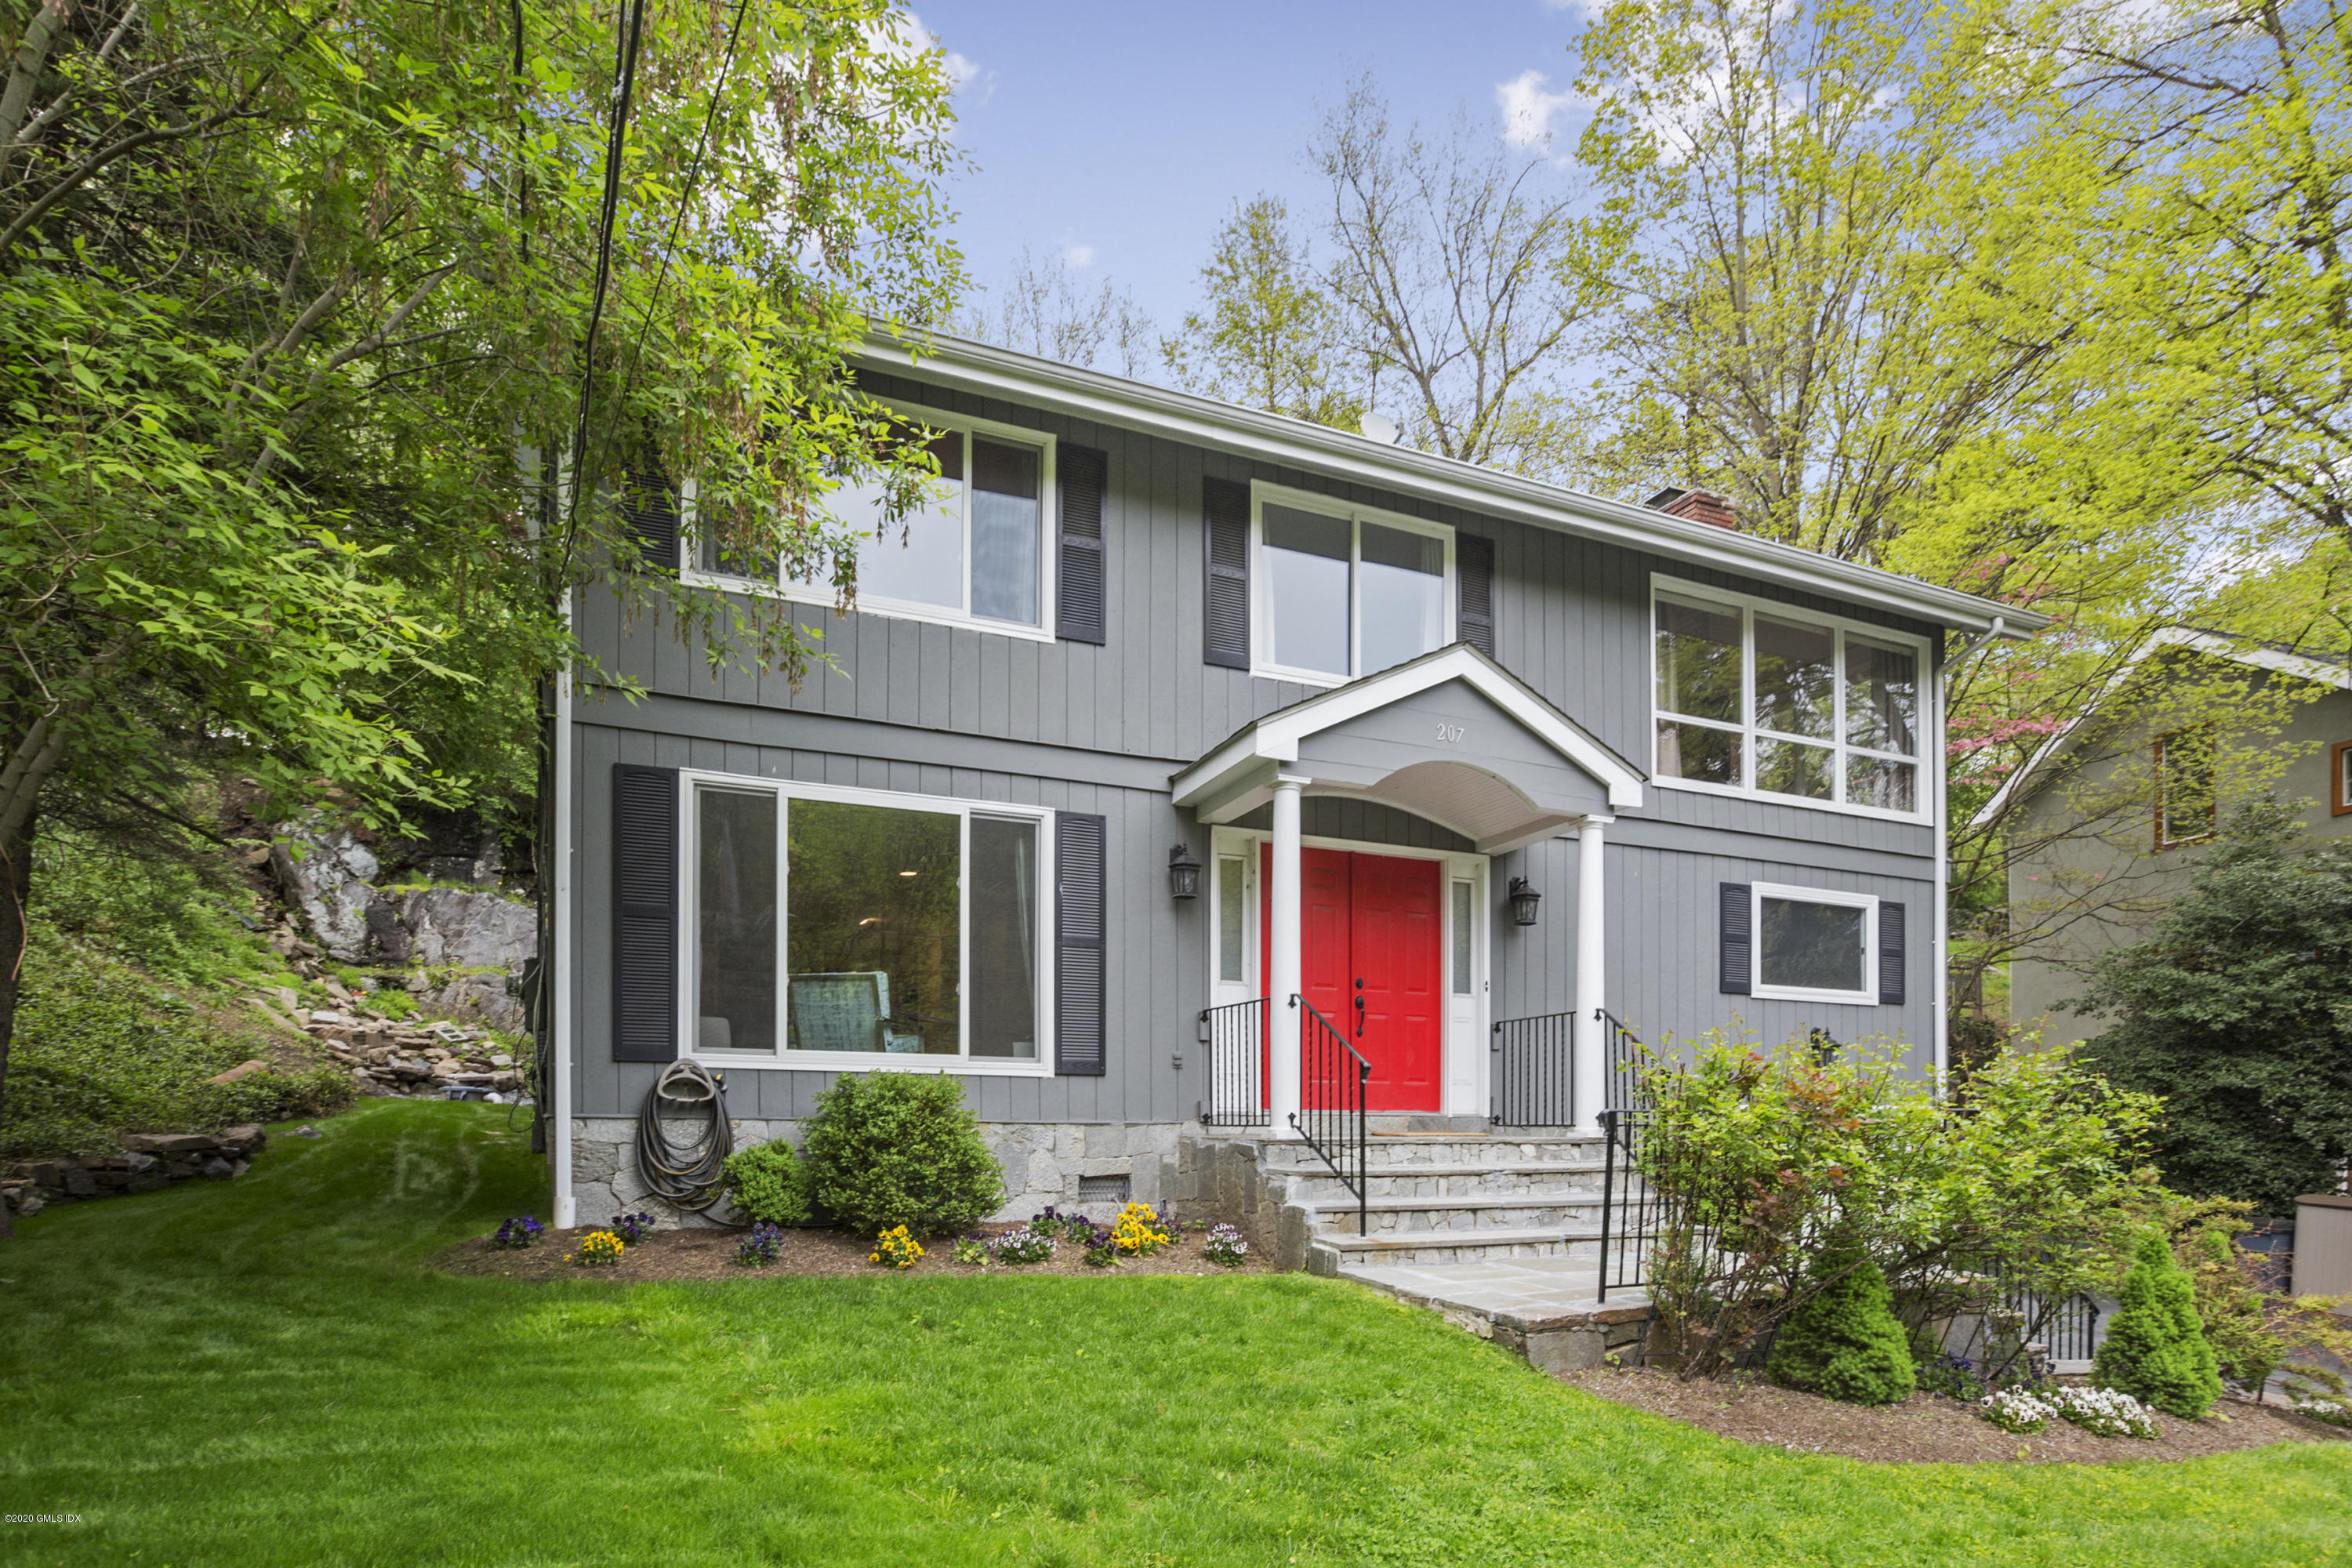 207 Glenville Road,Greenwich,Connecticut 06831,4 Bedrooms Bedrooms,2 BathroomsBathrooms,Single family,Glenville,108646